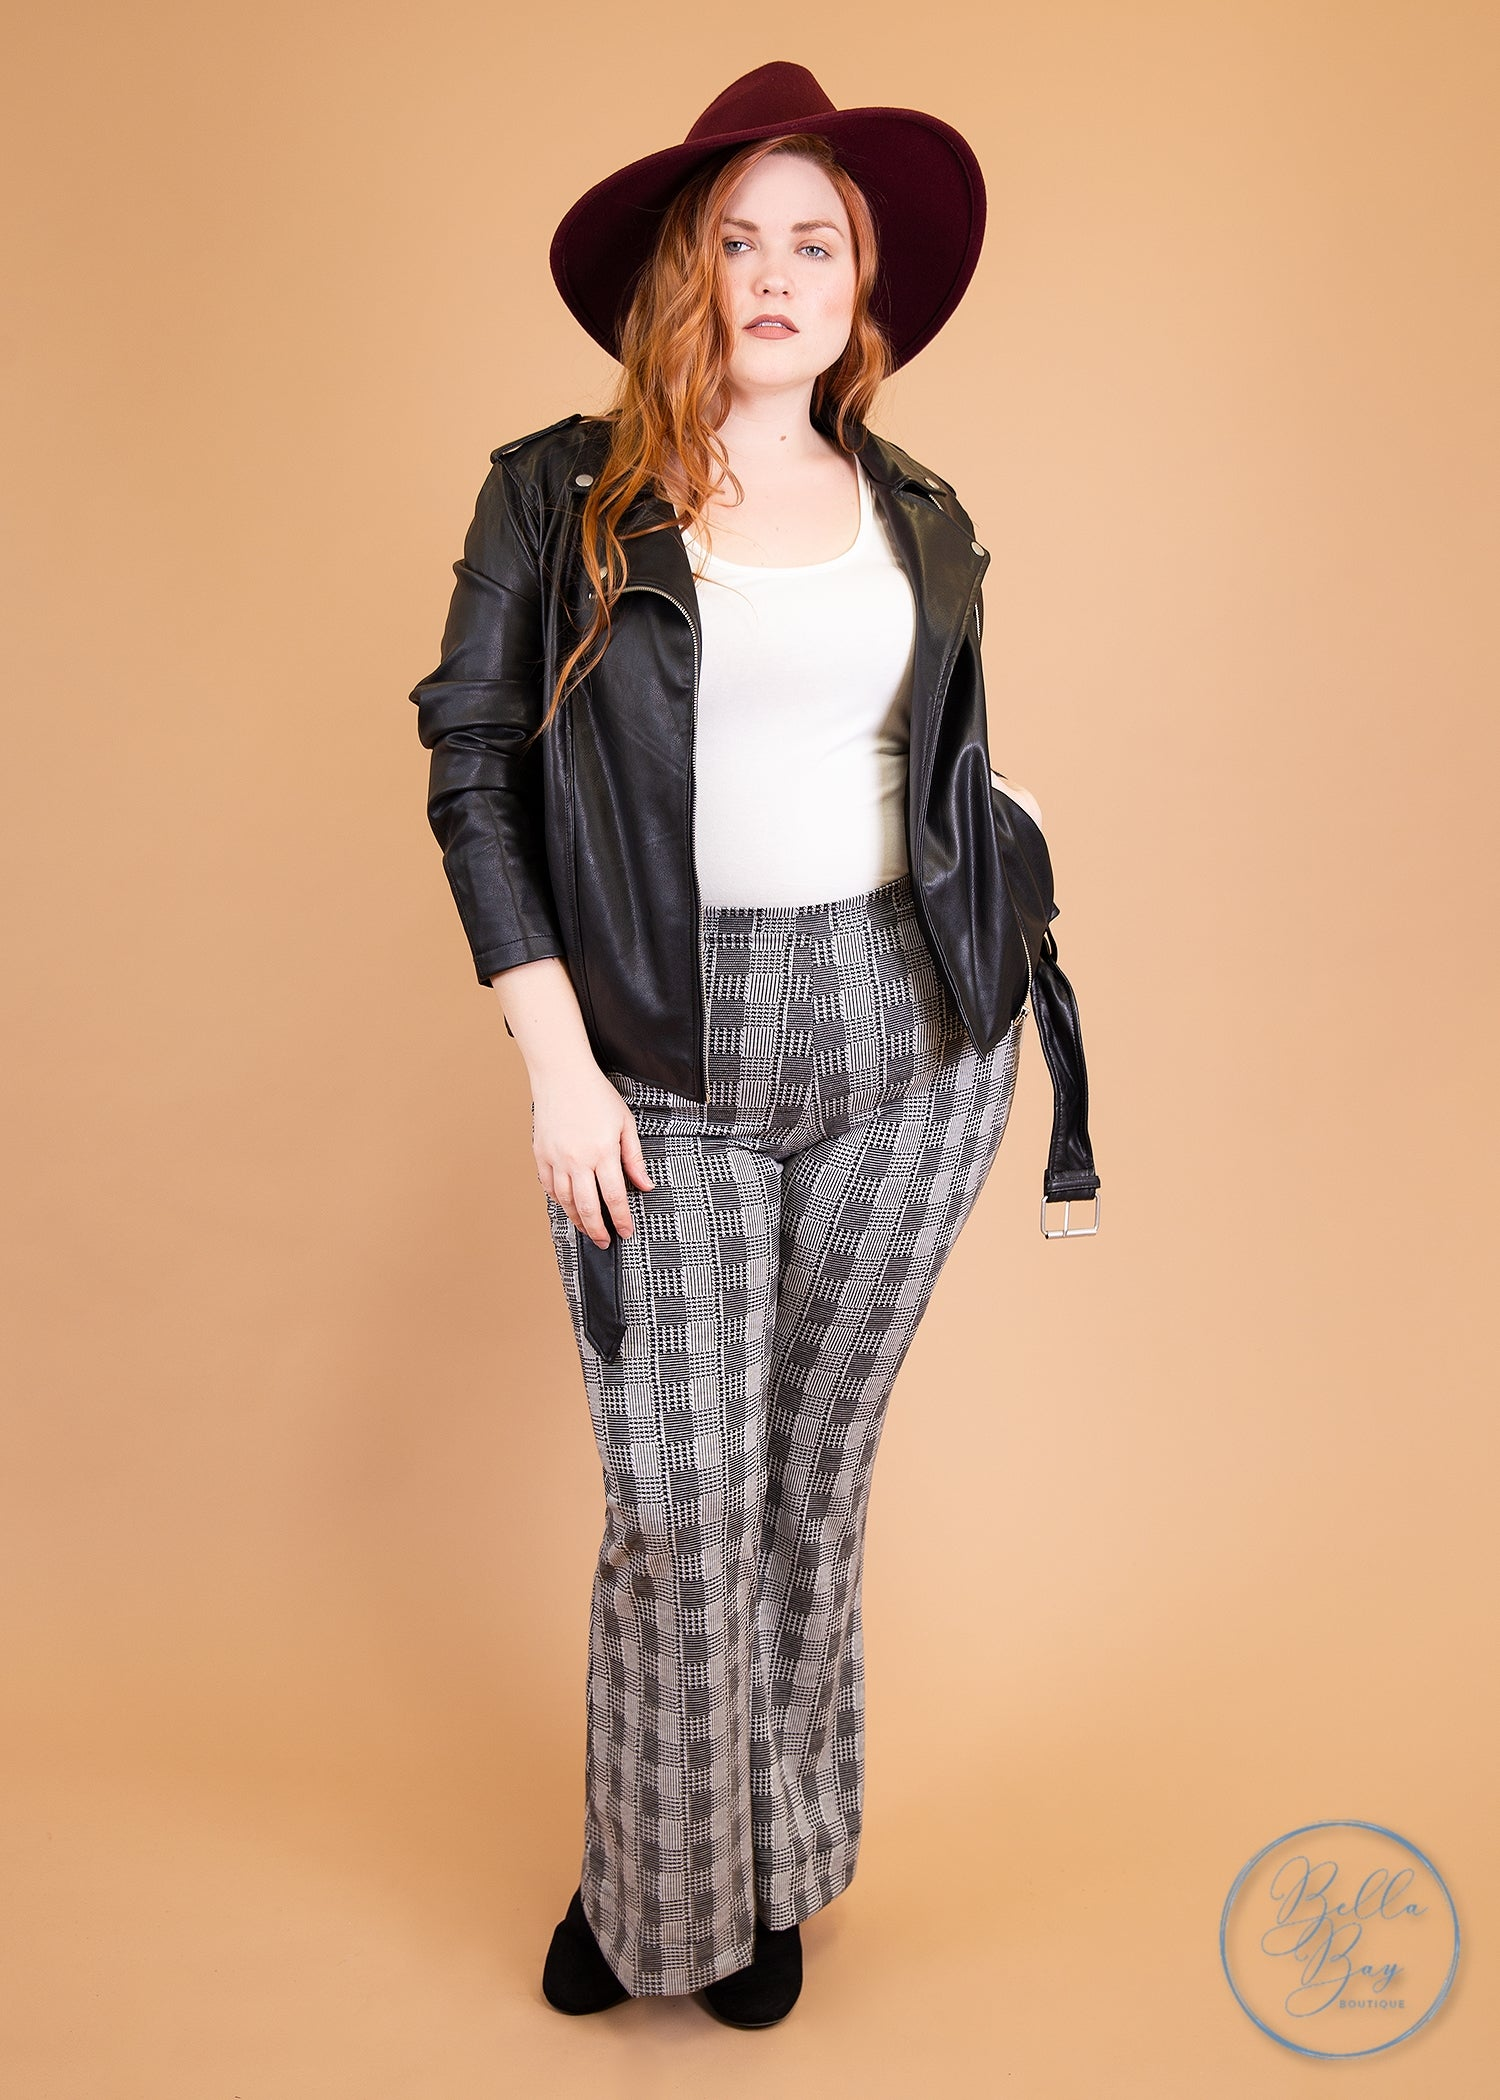 Paisley Raye Ginger Kick Flare Pants- Black and White Plaid (XL) - Paisley Raye with Bella Bay Boutique, shop now at  https://shopbellabay.com/ or locally in Newport Oregon